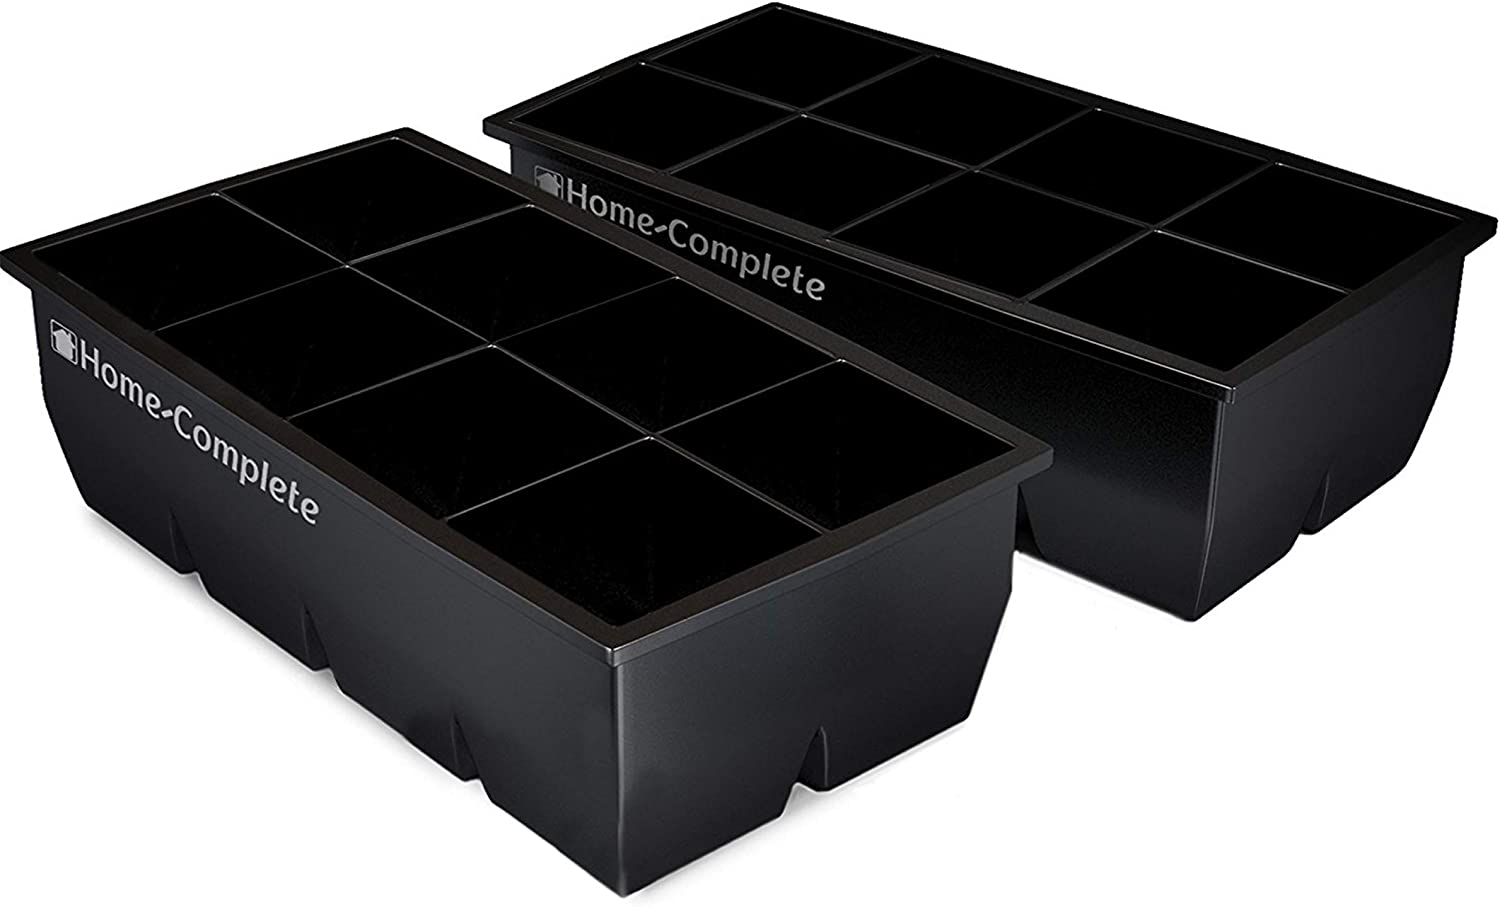 "Home-Complete Large Ice Molds Silicone Trays Makes 8, 2""x 2"" Big Cubes BPA-Free, Flexible-Chill Water, Lemonade, Cocktails, and More, Black(Pack Of 2)"